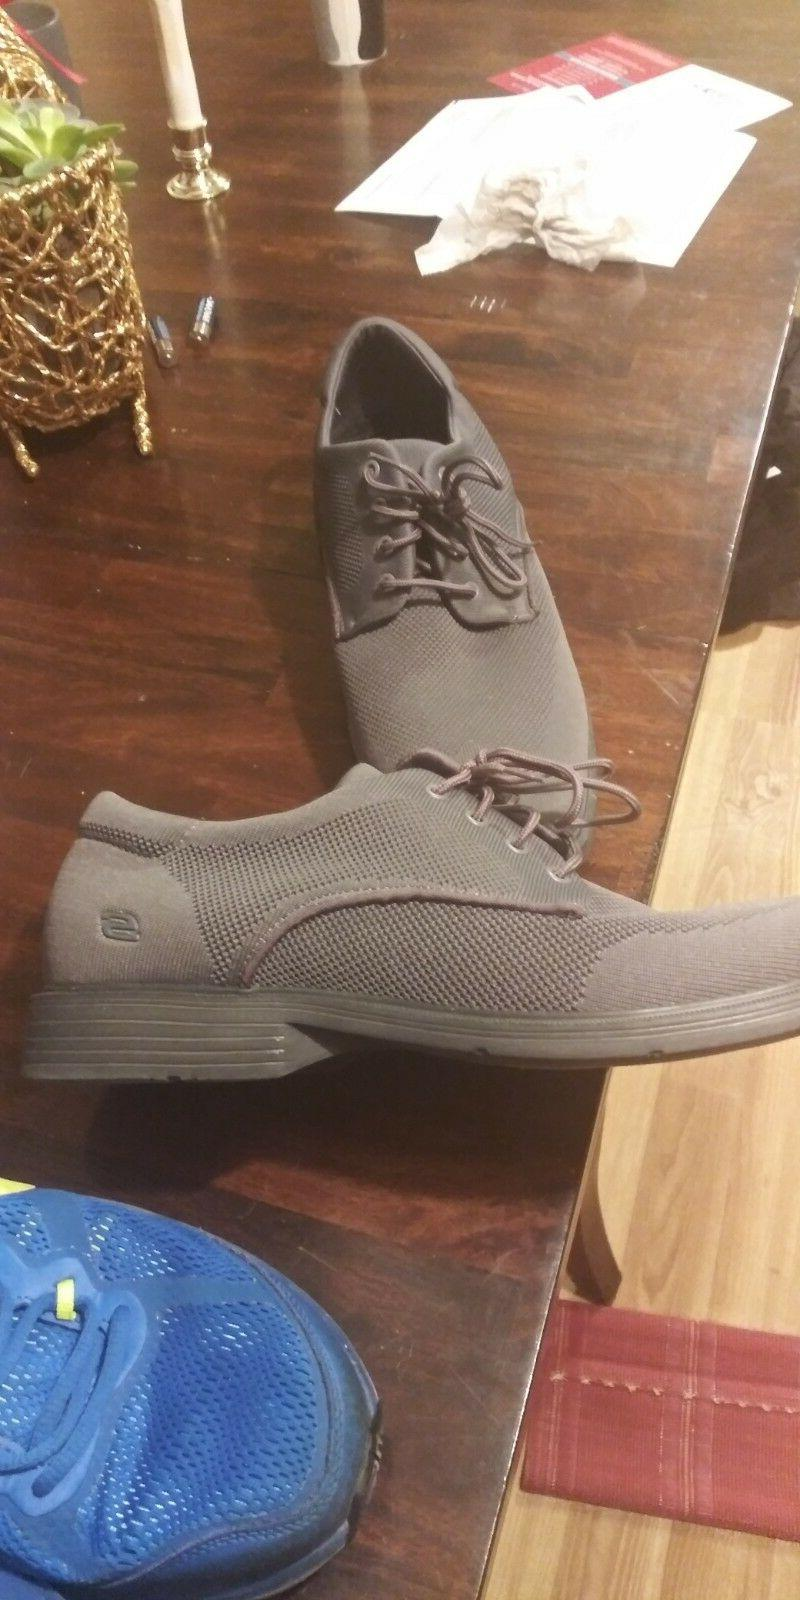 dress knit relaxed men shoes very nice